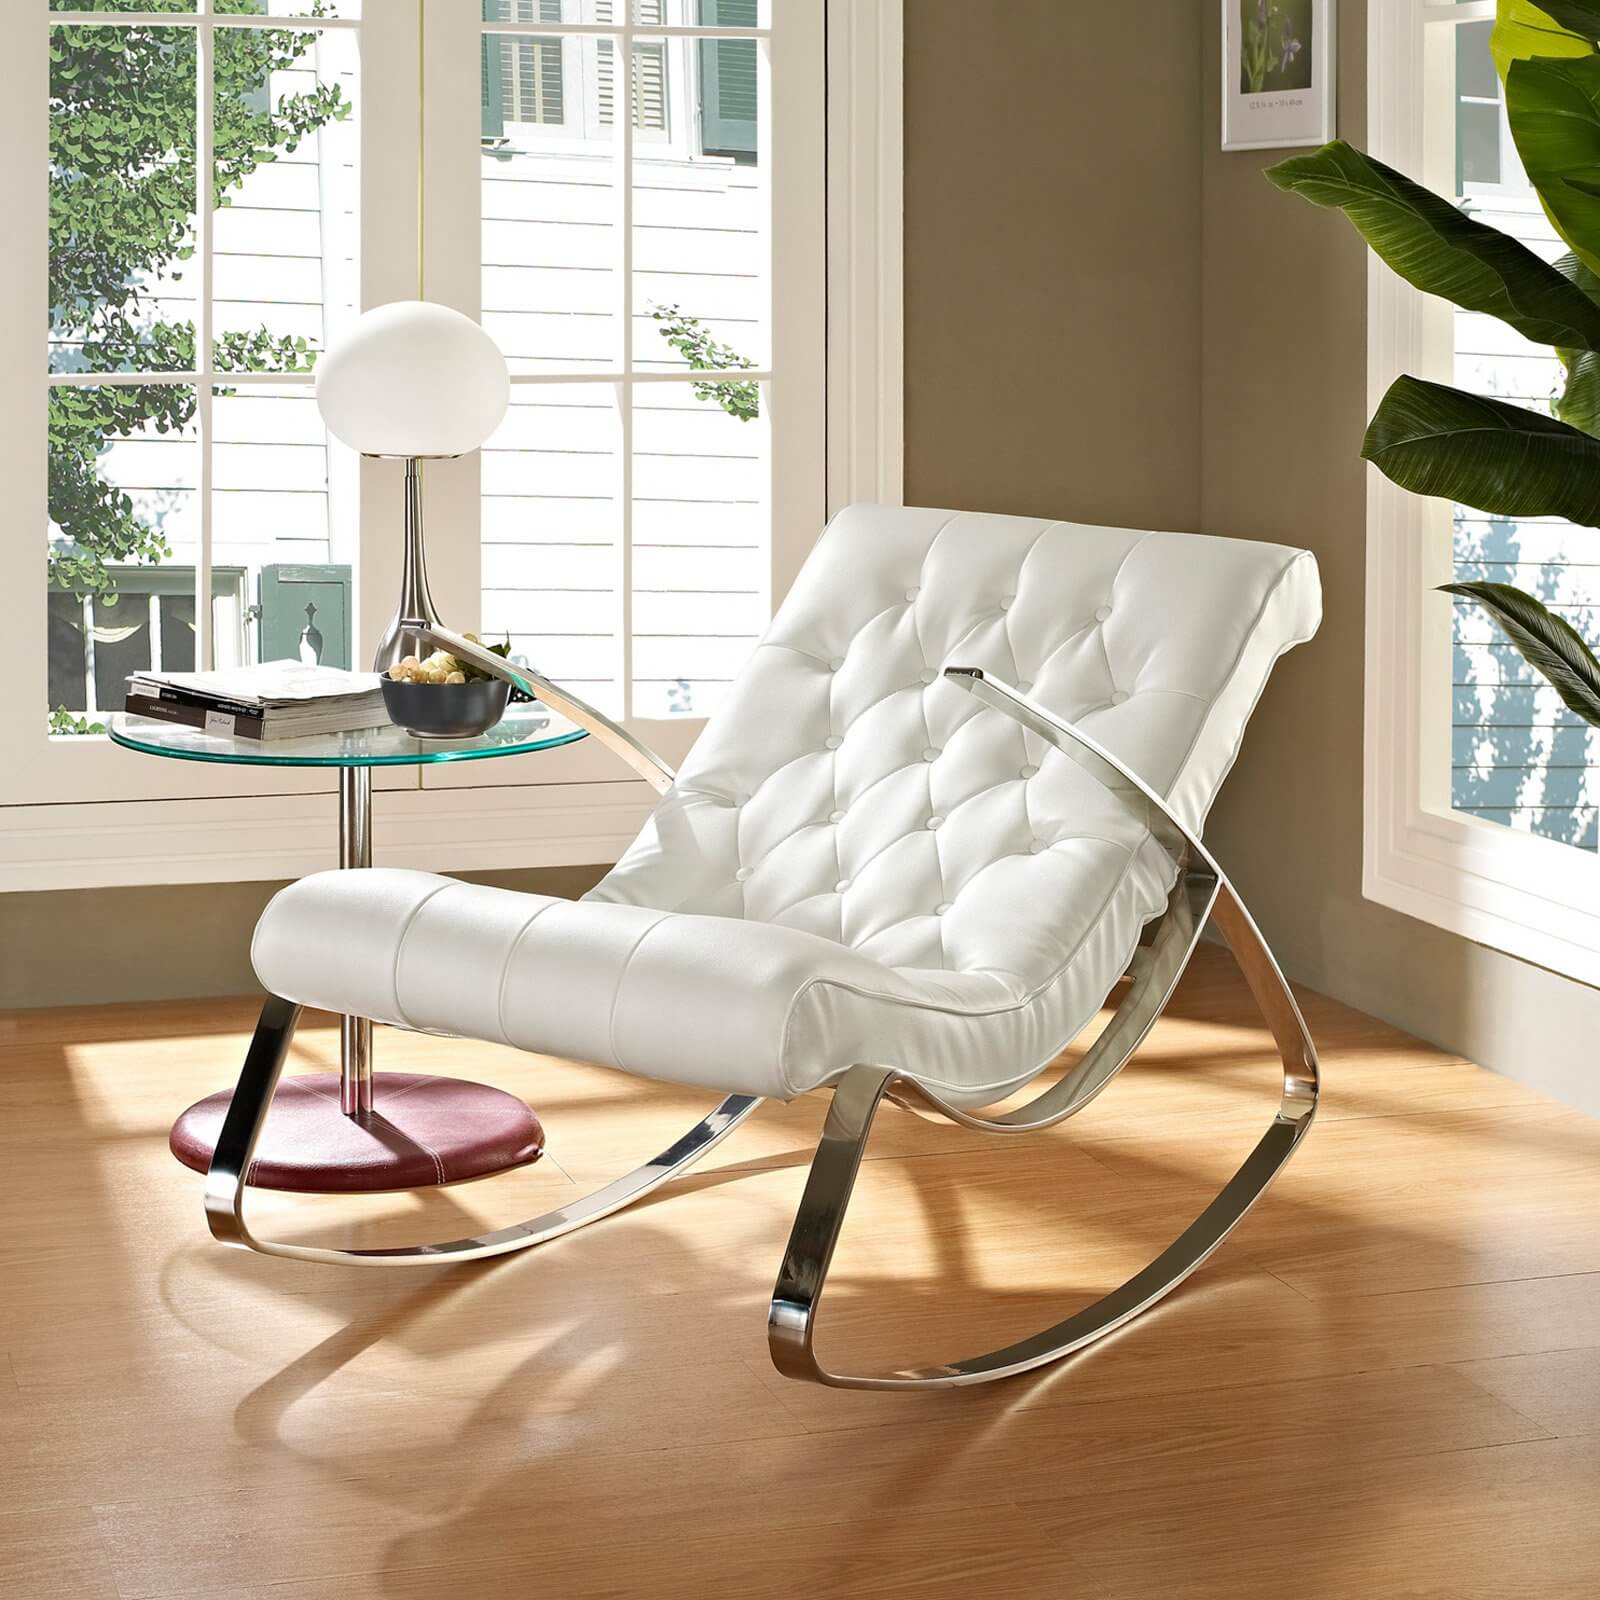 Breaking free from the standard rocking chair design, we bring you a thoroughly modern example. This piece stands a white tufted leather seat over chromed metal frame, in a reclined shape.